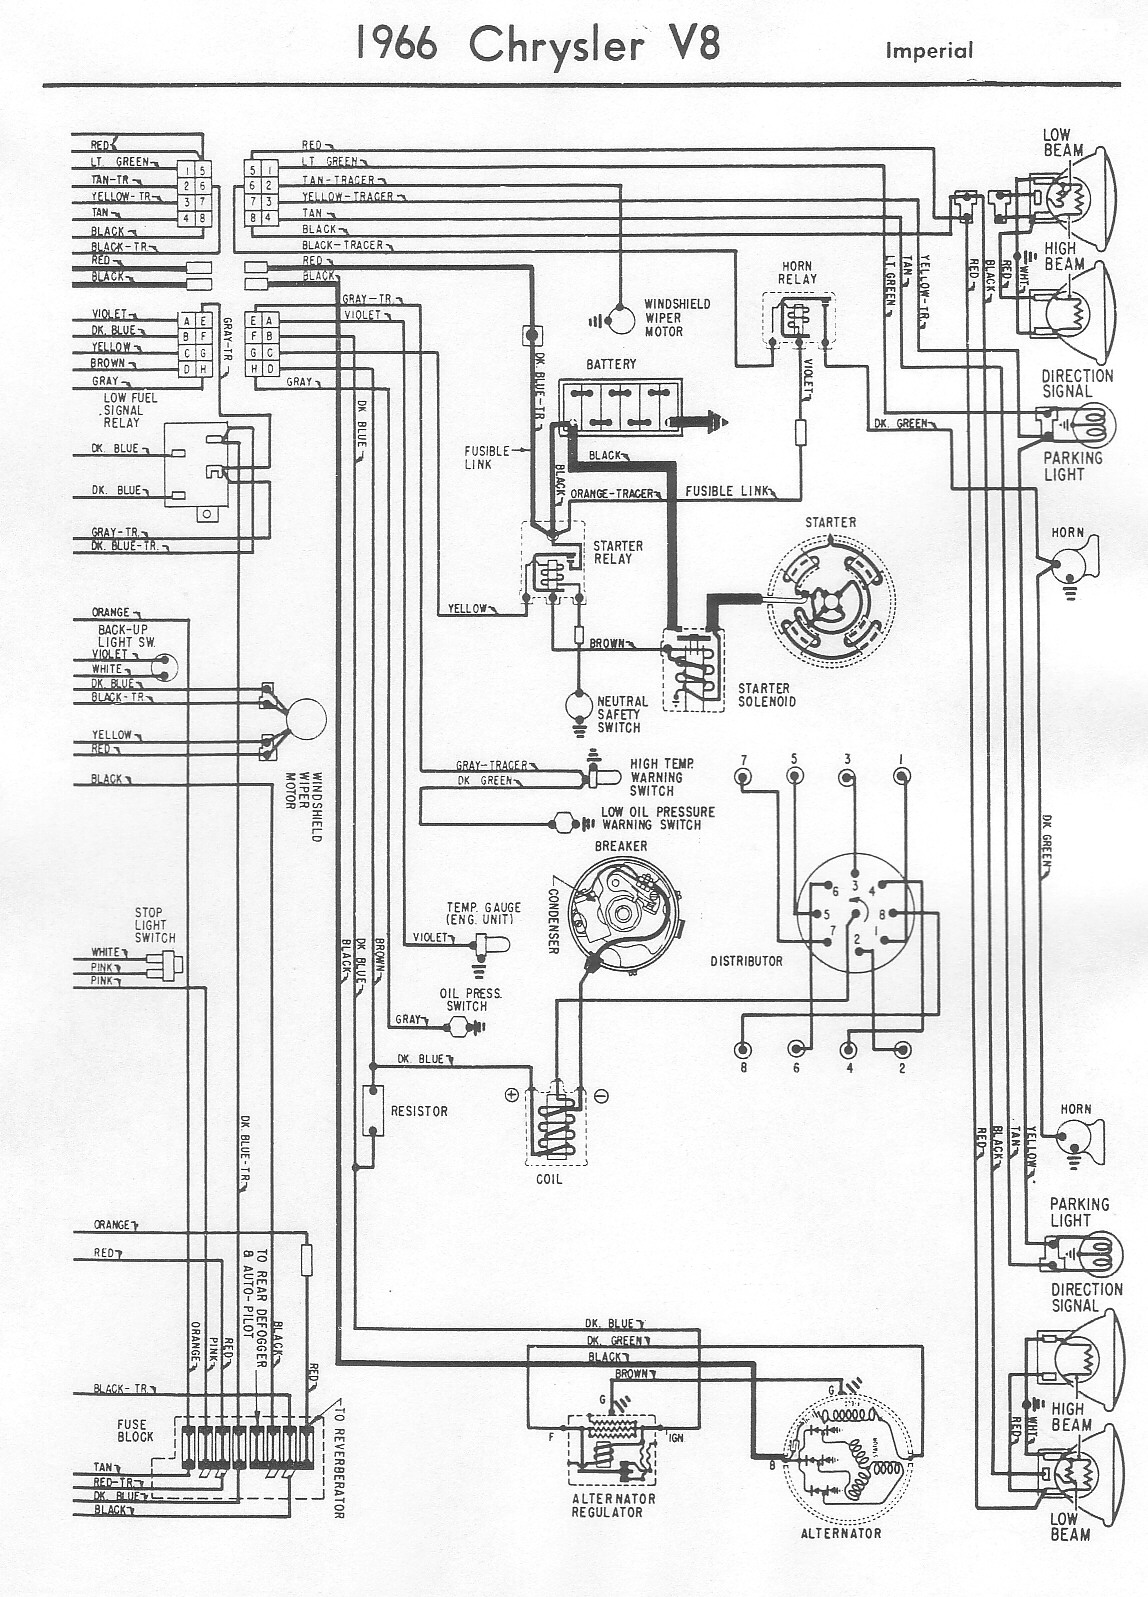 67 chrysler window motor wiring diagram [ 1148 x 1597 Pixel ]